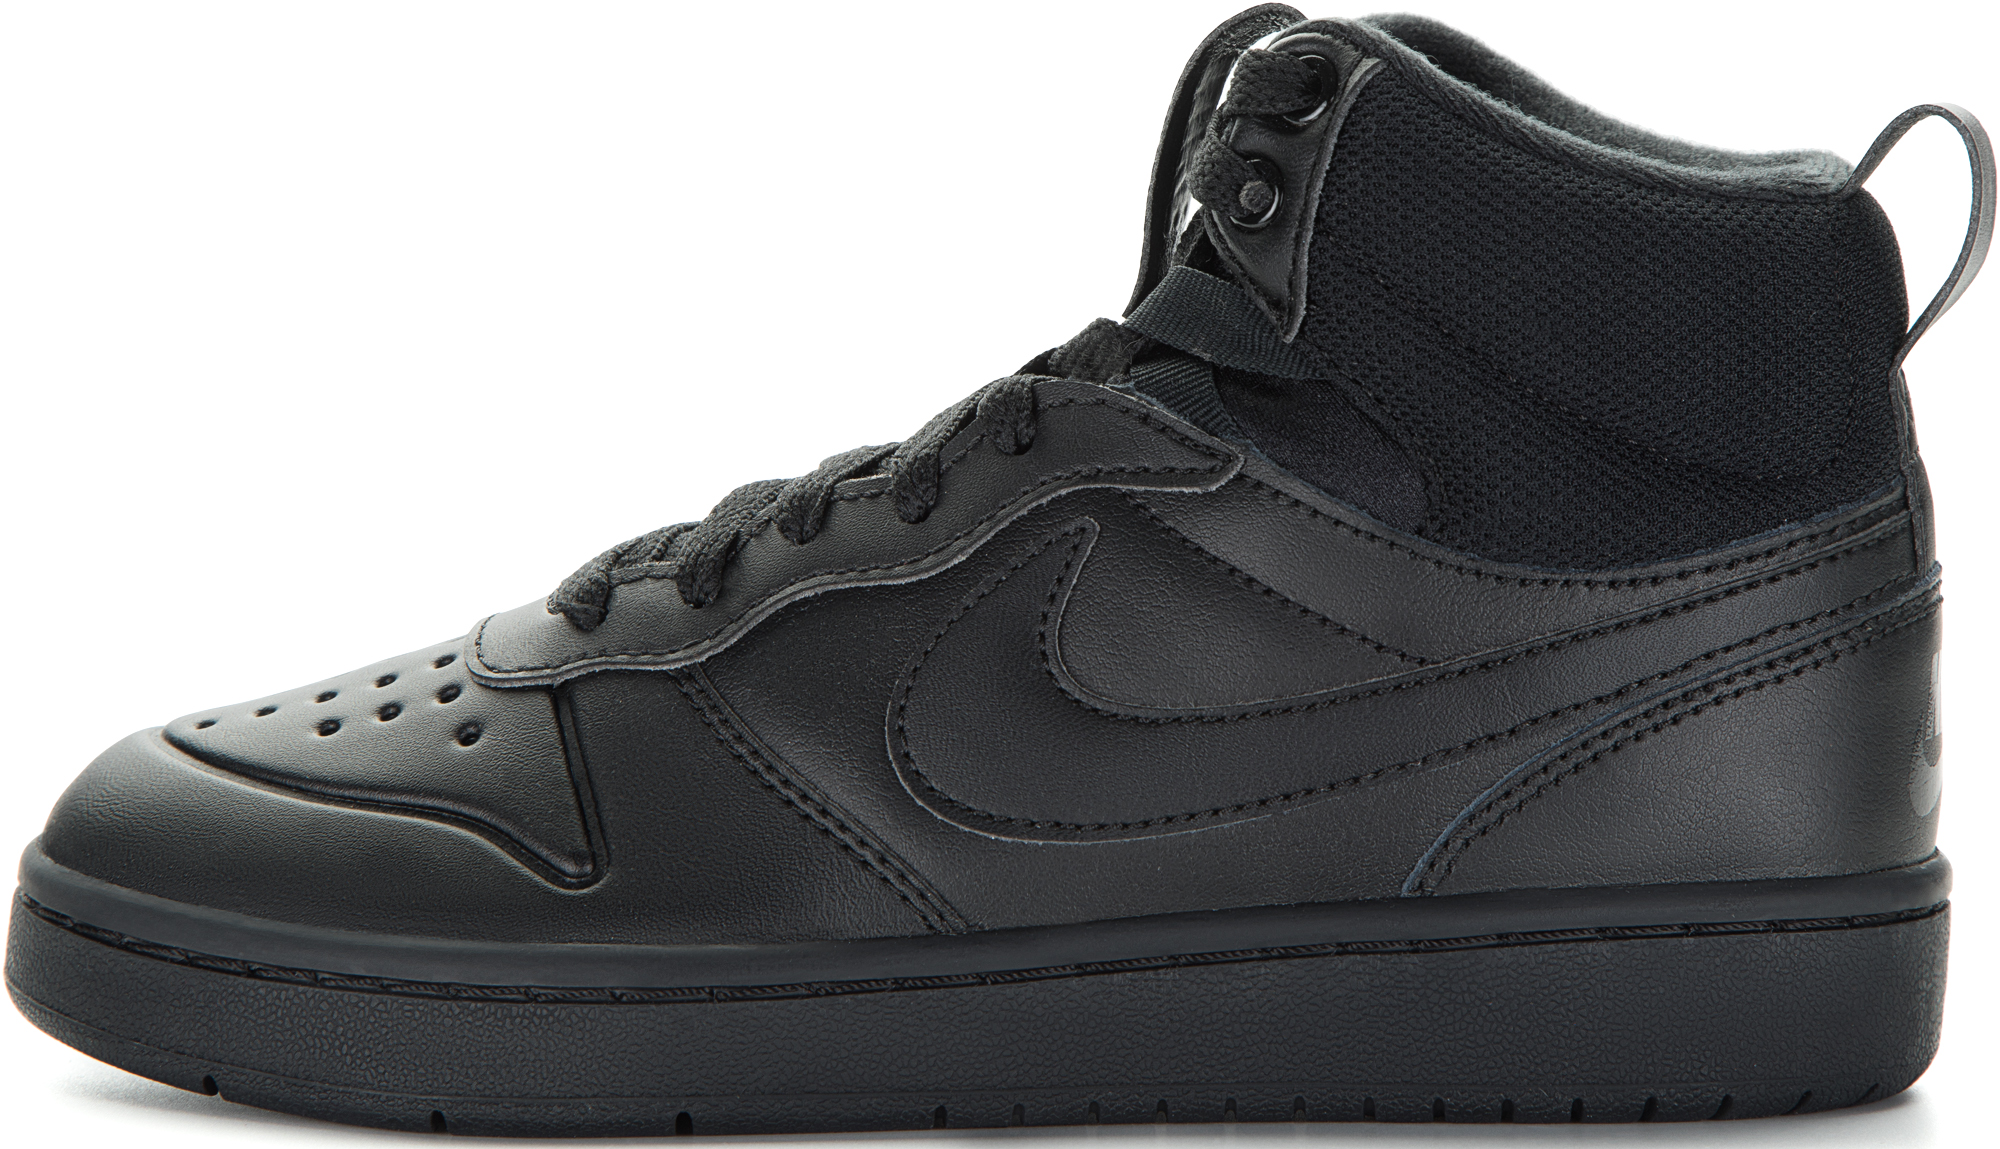 Nike Кеды для мальчиков Nike Court Borough Mid 2 Boot, размер 39 кеды nike кеды nike court borough mid td